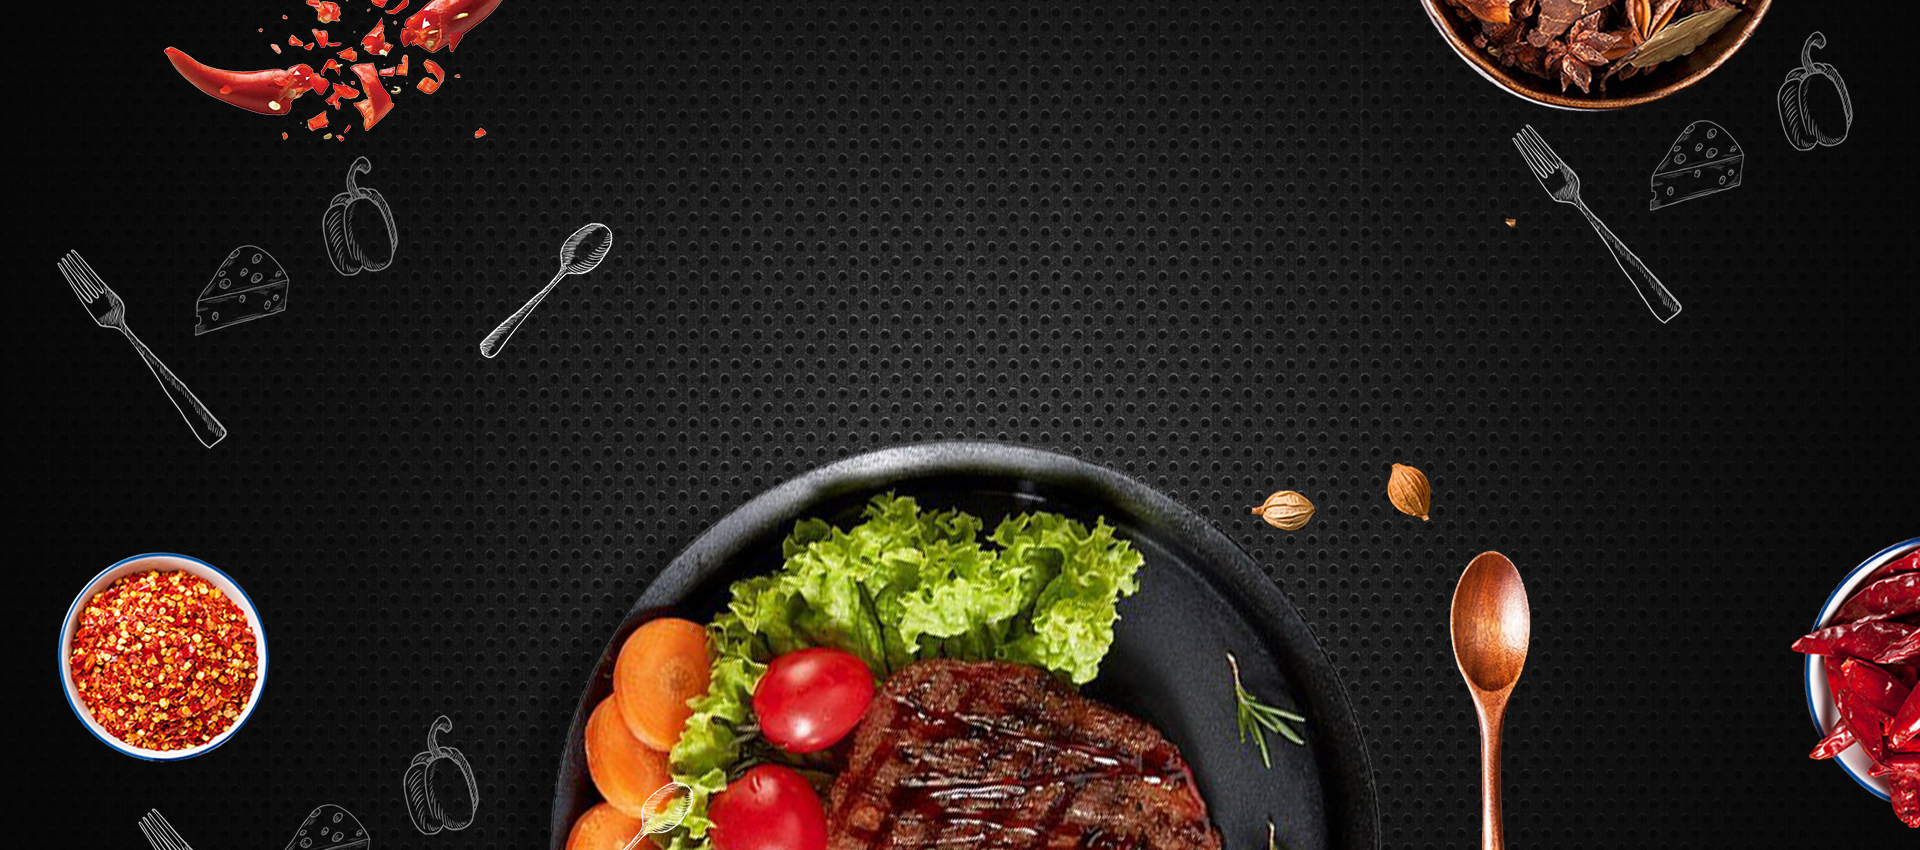 late night snack  gourmet wine  steak promotion  cool  bright  carnival background image for